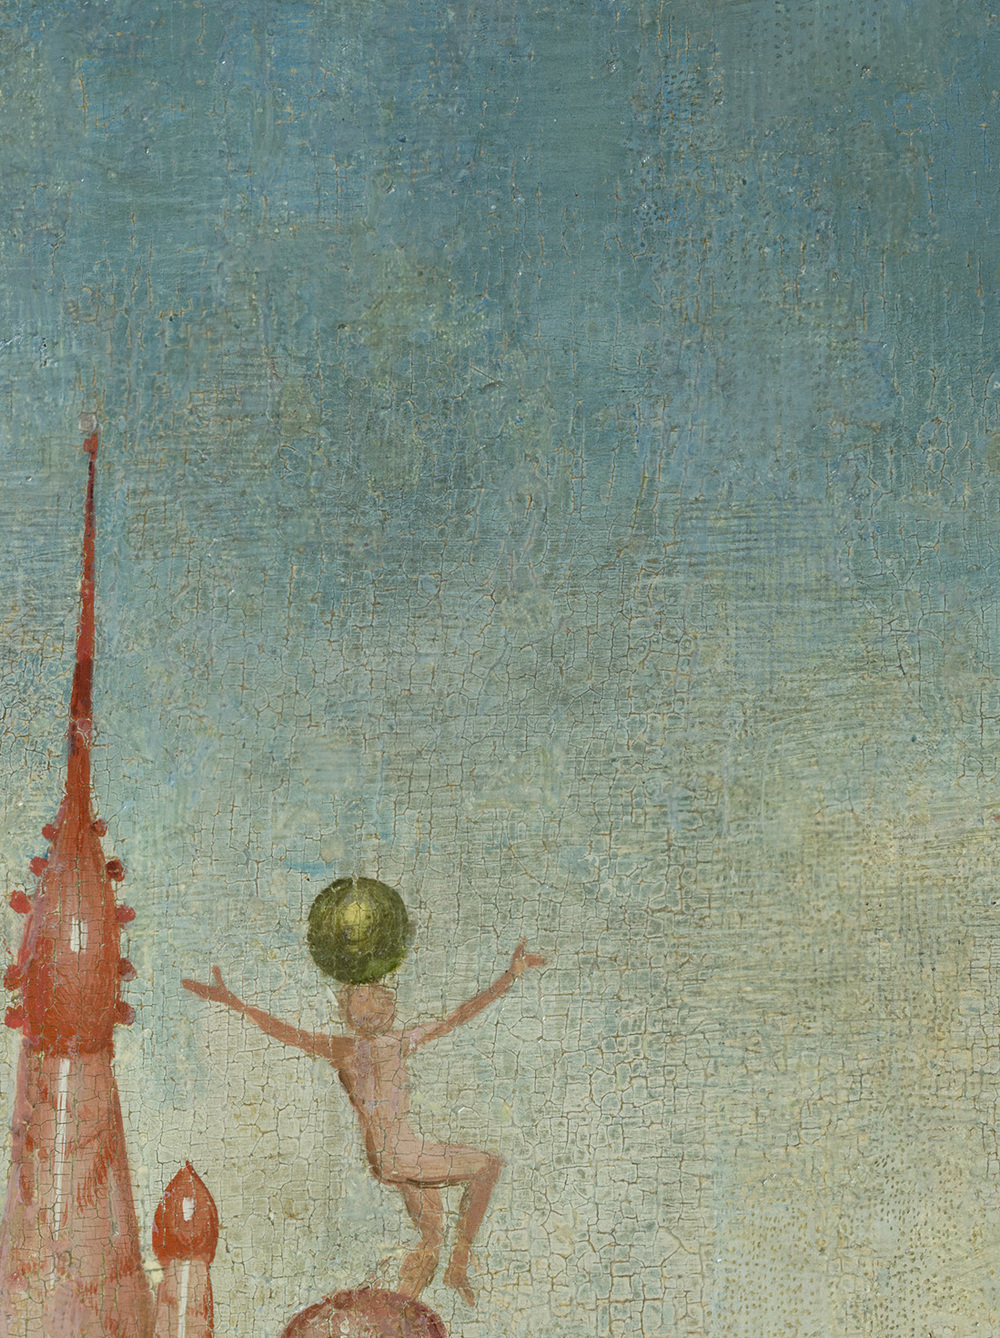 Details from  The Garden of Earthly Delights  (Hieronymus Bosch, 1503-15)